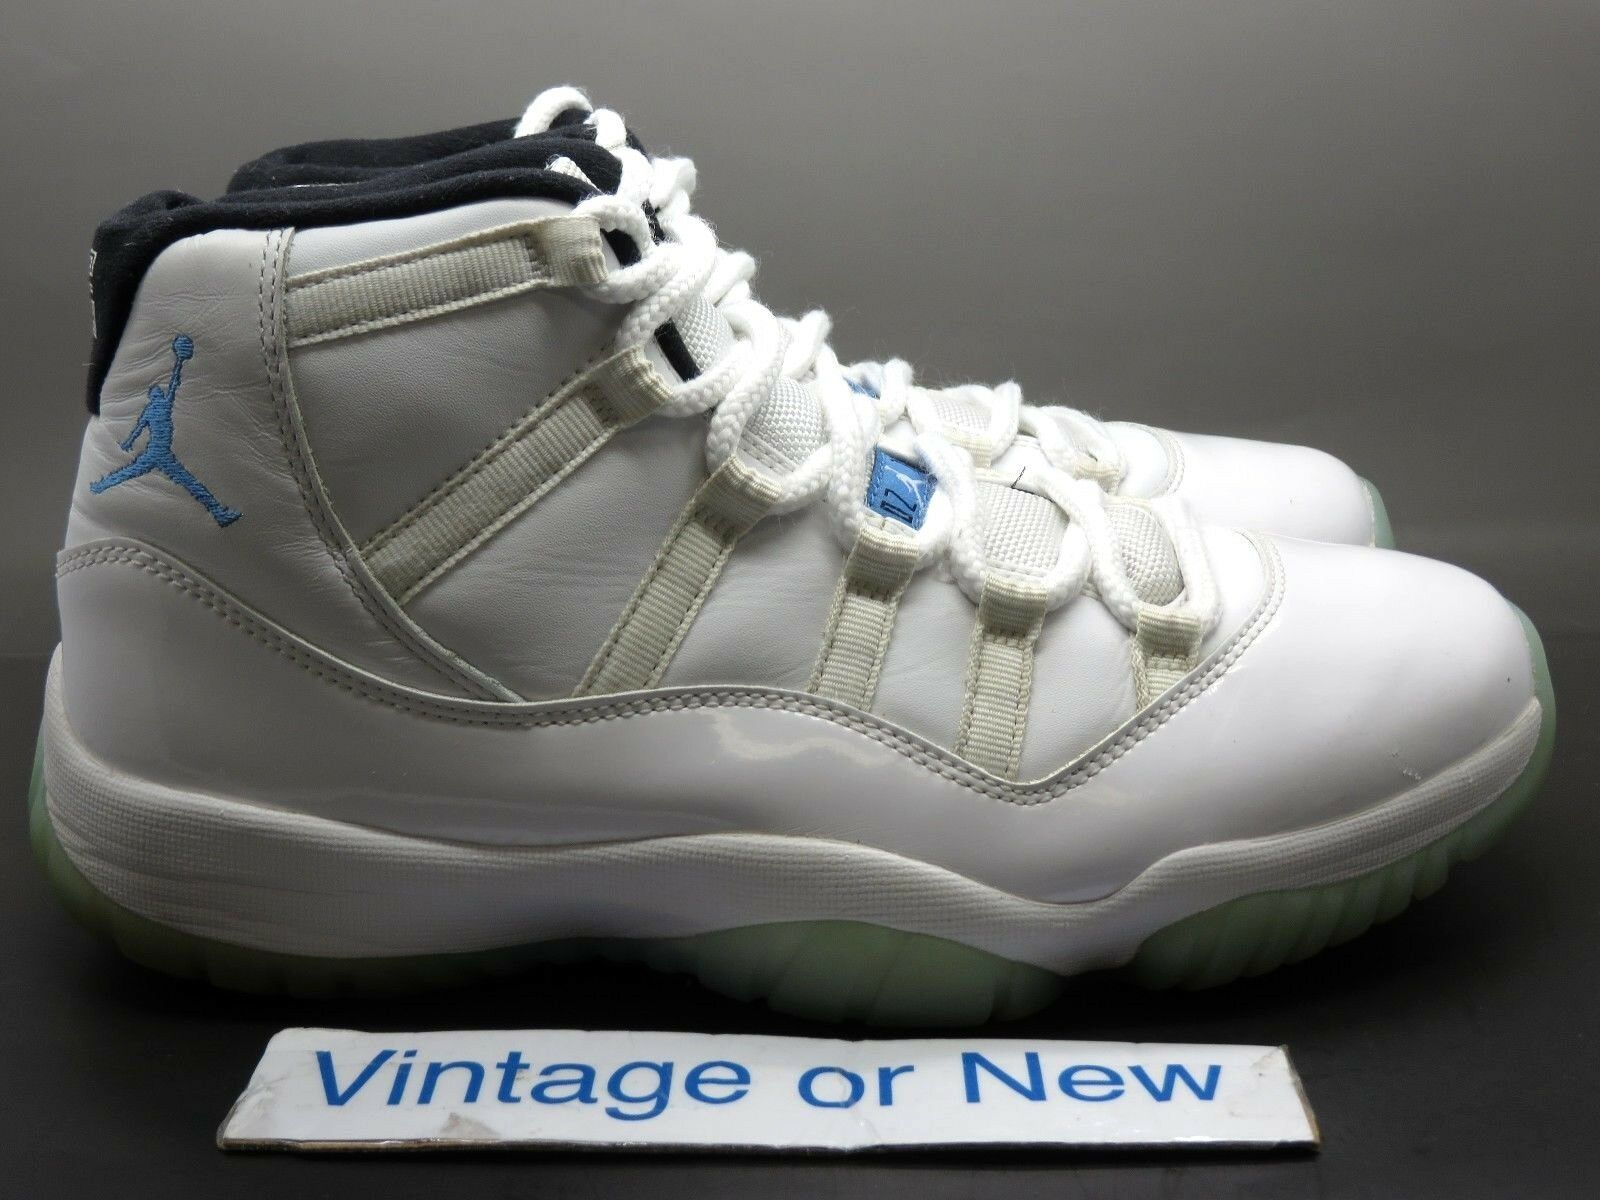 Air Jordan XI 11 Legend blu Columbia Retro 2014 sz sz sz 8.5 adb1f5